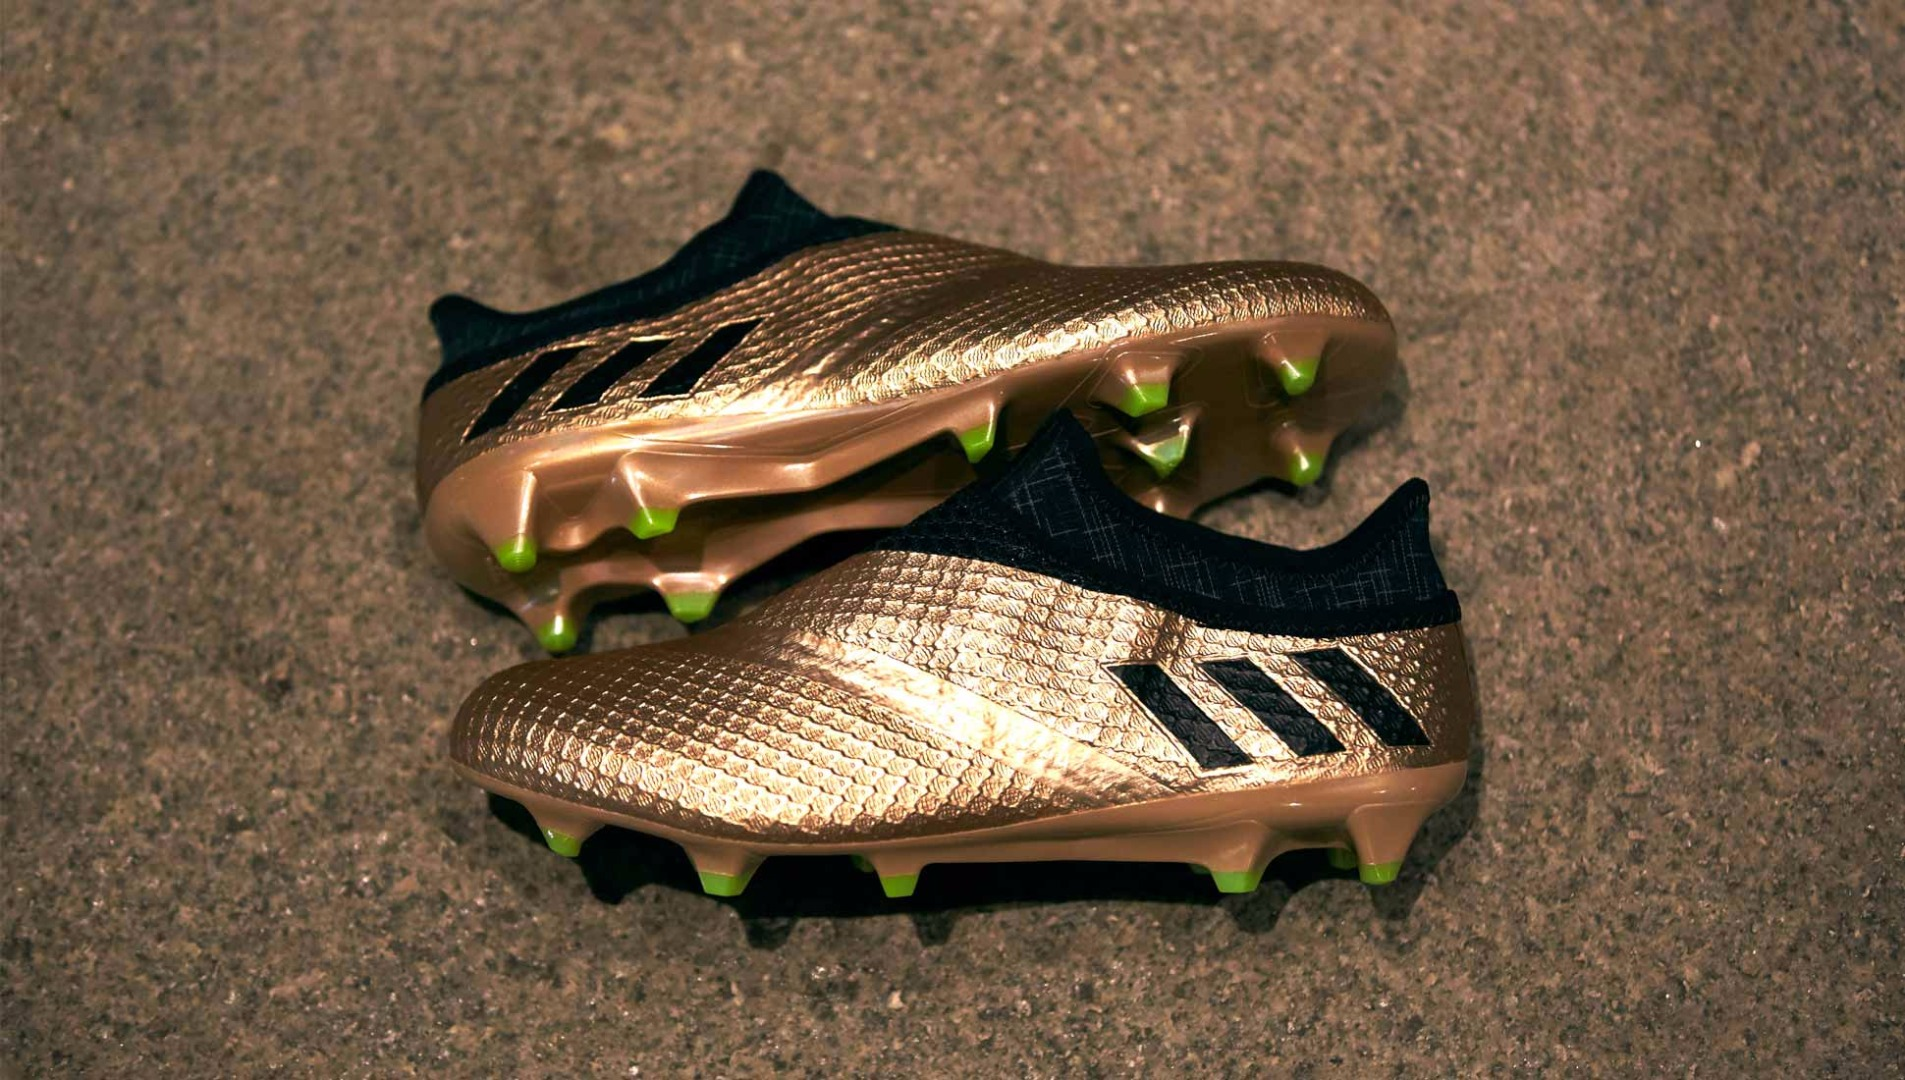 fc4b898b854bd5 adidas MESSI 16+ Pureagility Turbo Charge Football Boots - SoccerBible